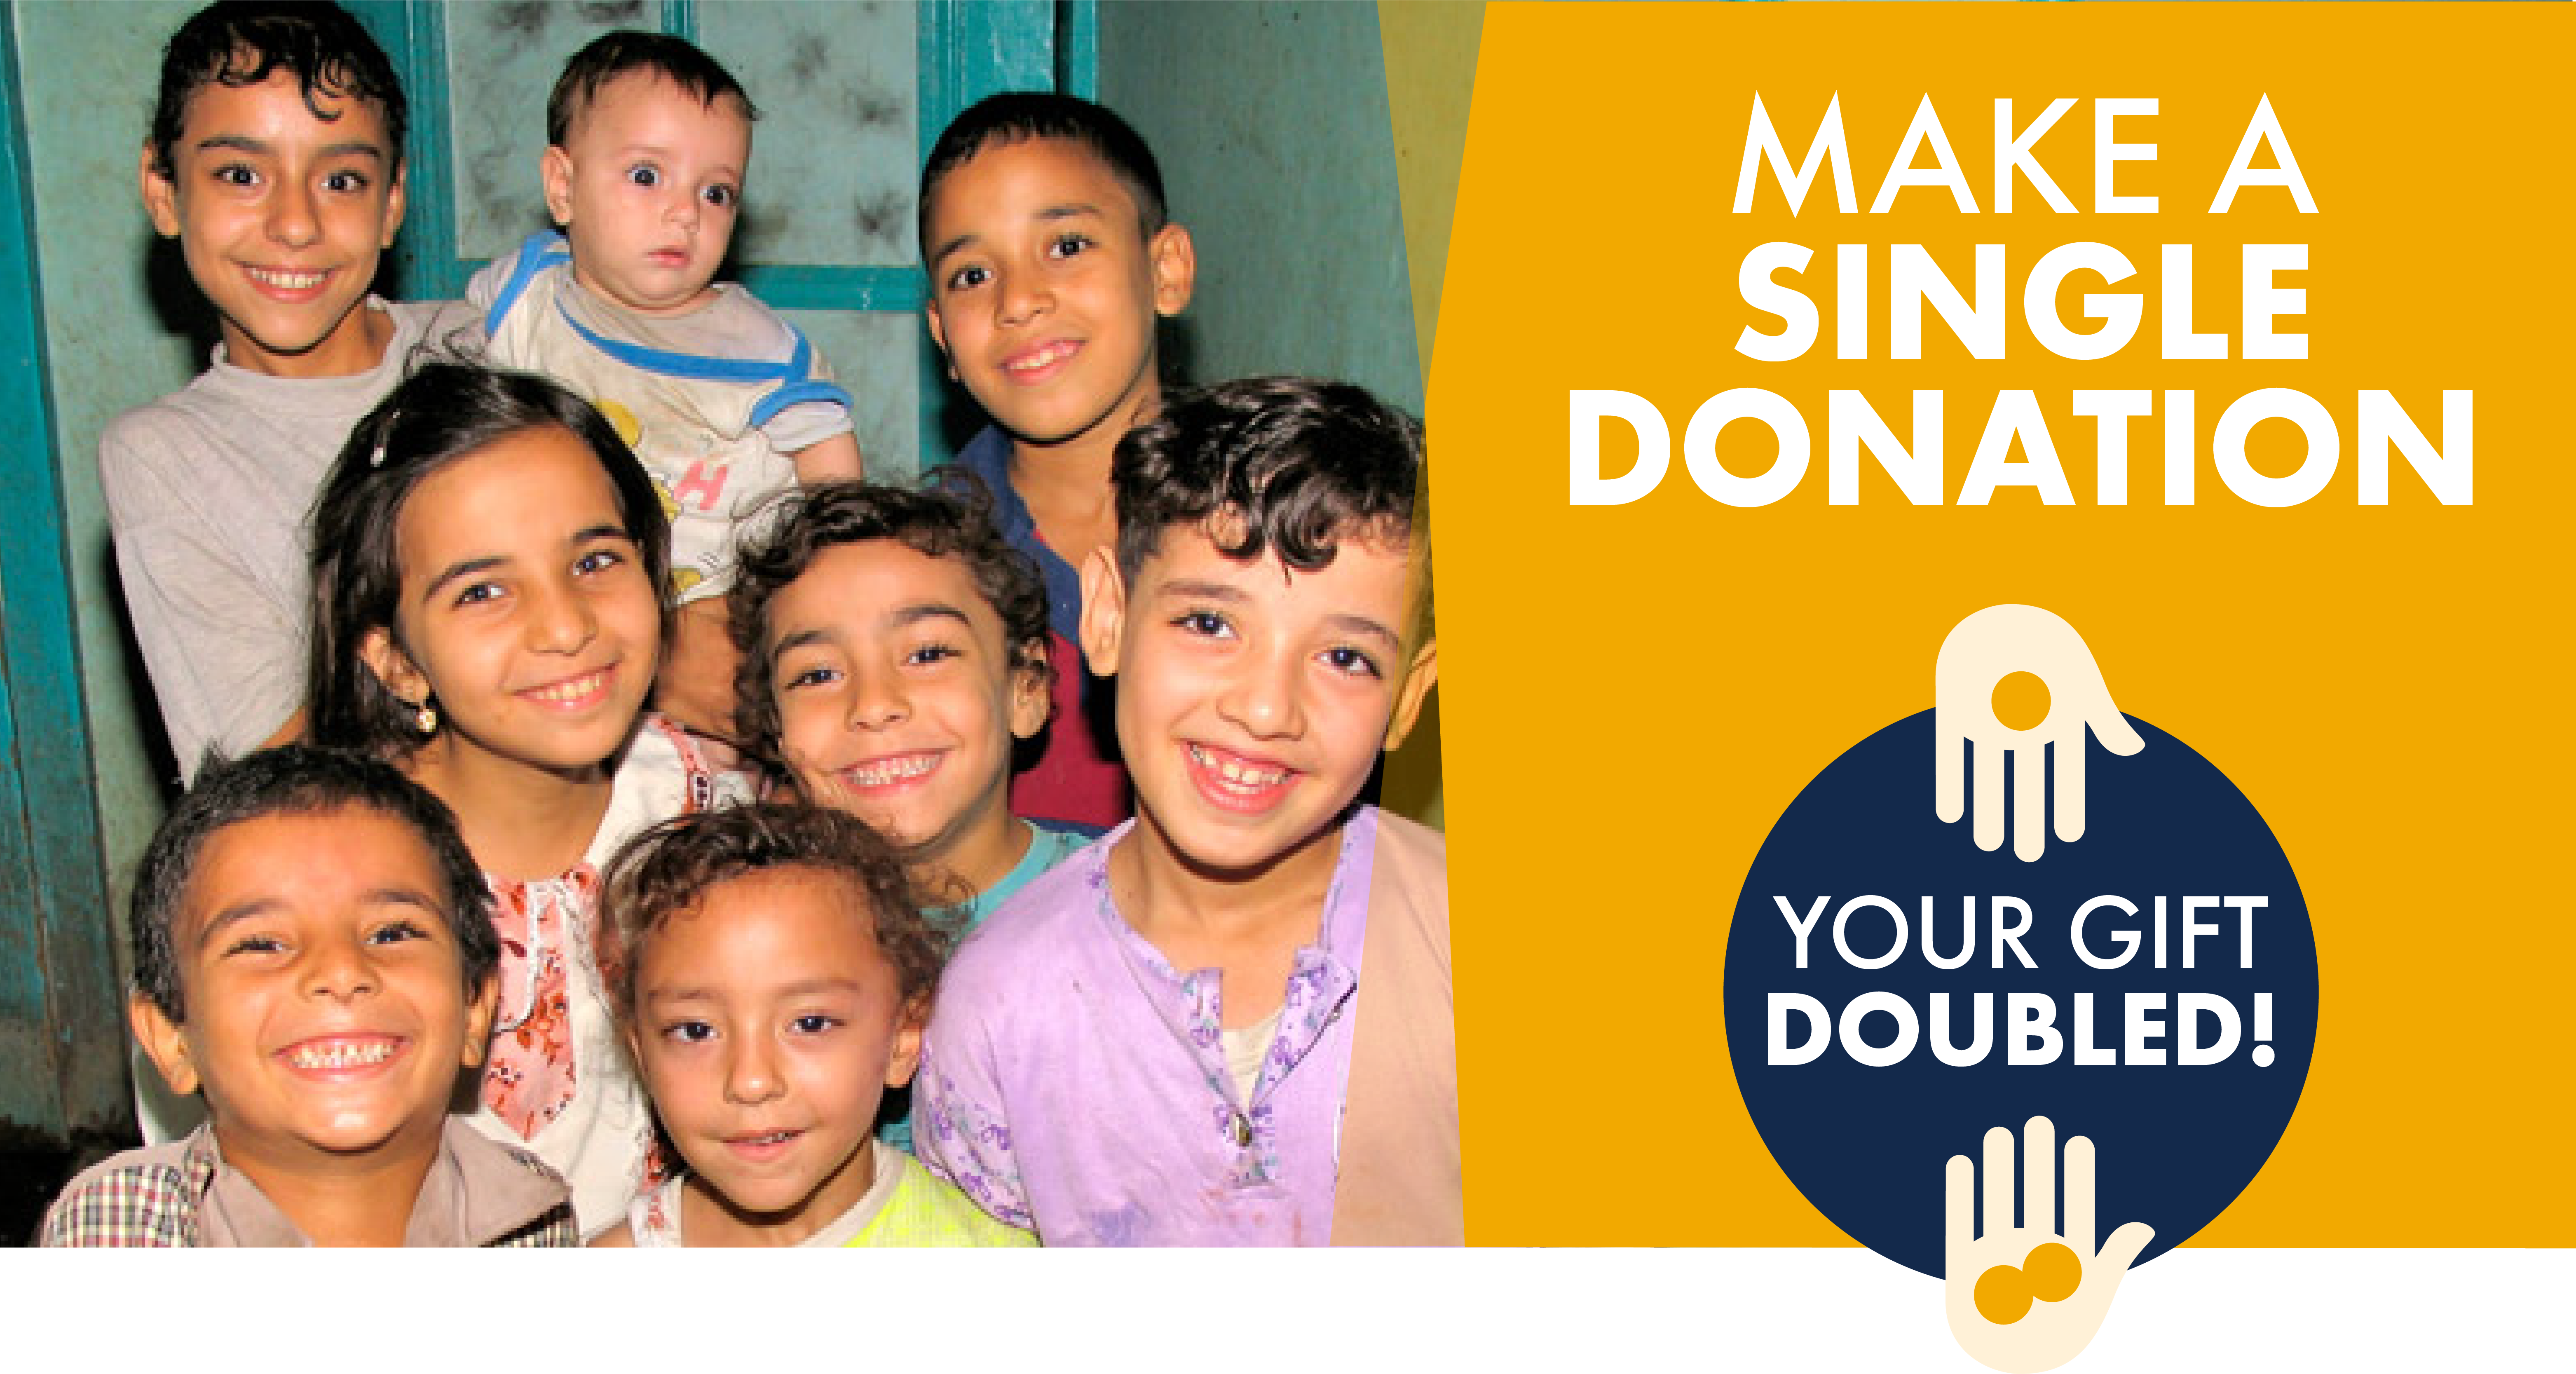 Make a single donation - your gift doubled